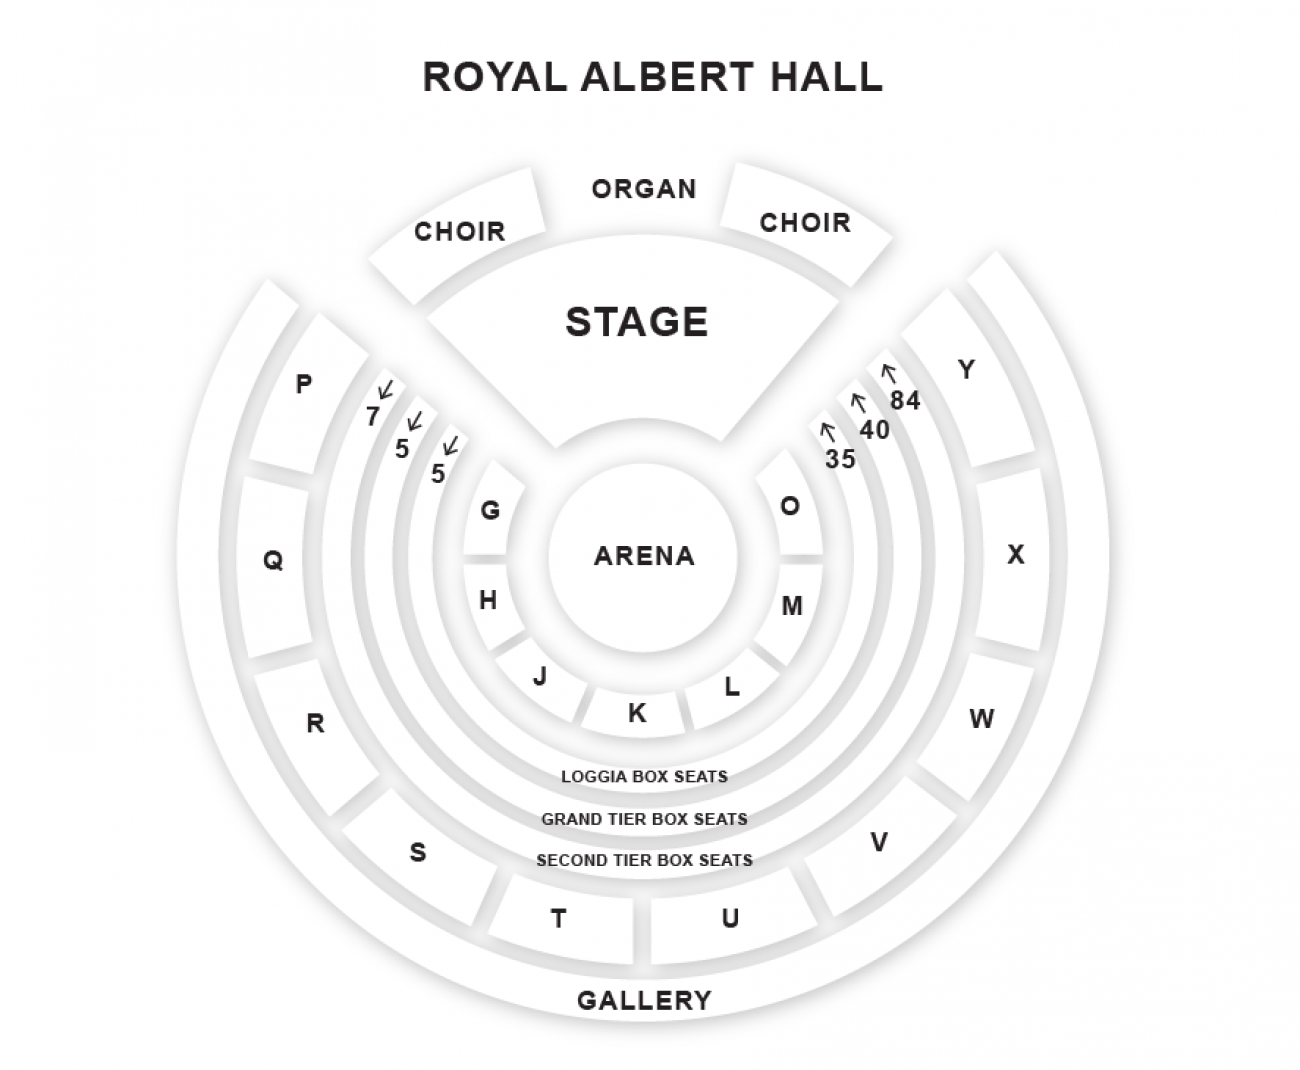 Royal Albert Hall Seating plan